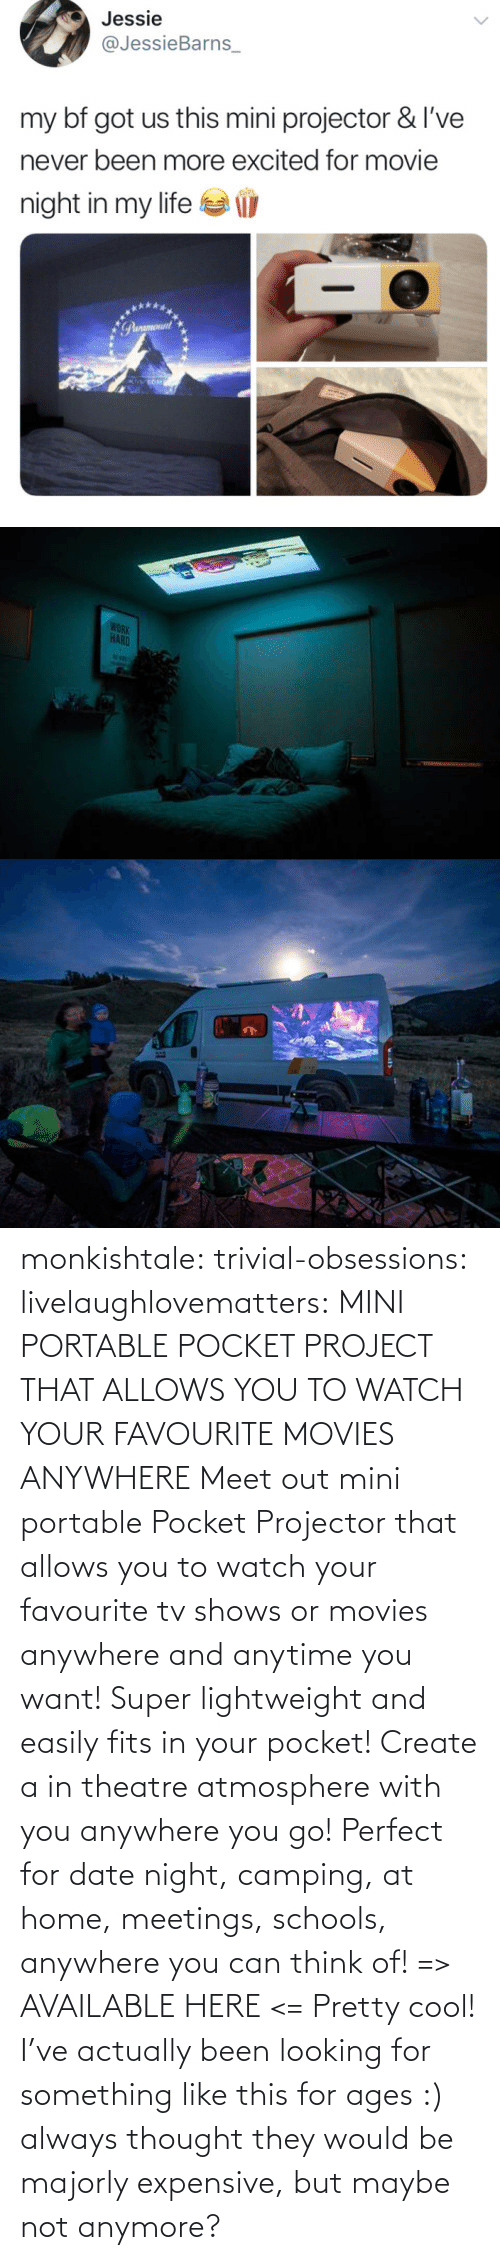 night: monkishtale: trivial-obsessions:   livelaughlovematters:   MINI PORTABLE POCKET PROJECT THAT ALLOWS YOU TO WATCH YOUR FAVOURITE MOVIES ANYWHERE Meet out mini portable Pocket Projector that allows you to watch your favourite tv shows or movies anywhere and anytime you want! Super lightweight and easily fits in your pocket! Create a in theatre atmosphere with you anywhere you go! Perfect for date night, camping, at home, meetings, schools, anywhere you can think of! => AVAILABLE HERE <=    Pretty cool!    I've actually been looking for something like this for ages :) always thought they would be majorly expensive, but maybe not anymore?